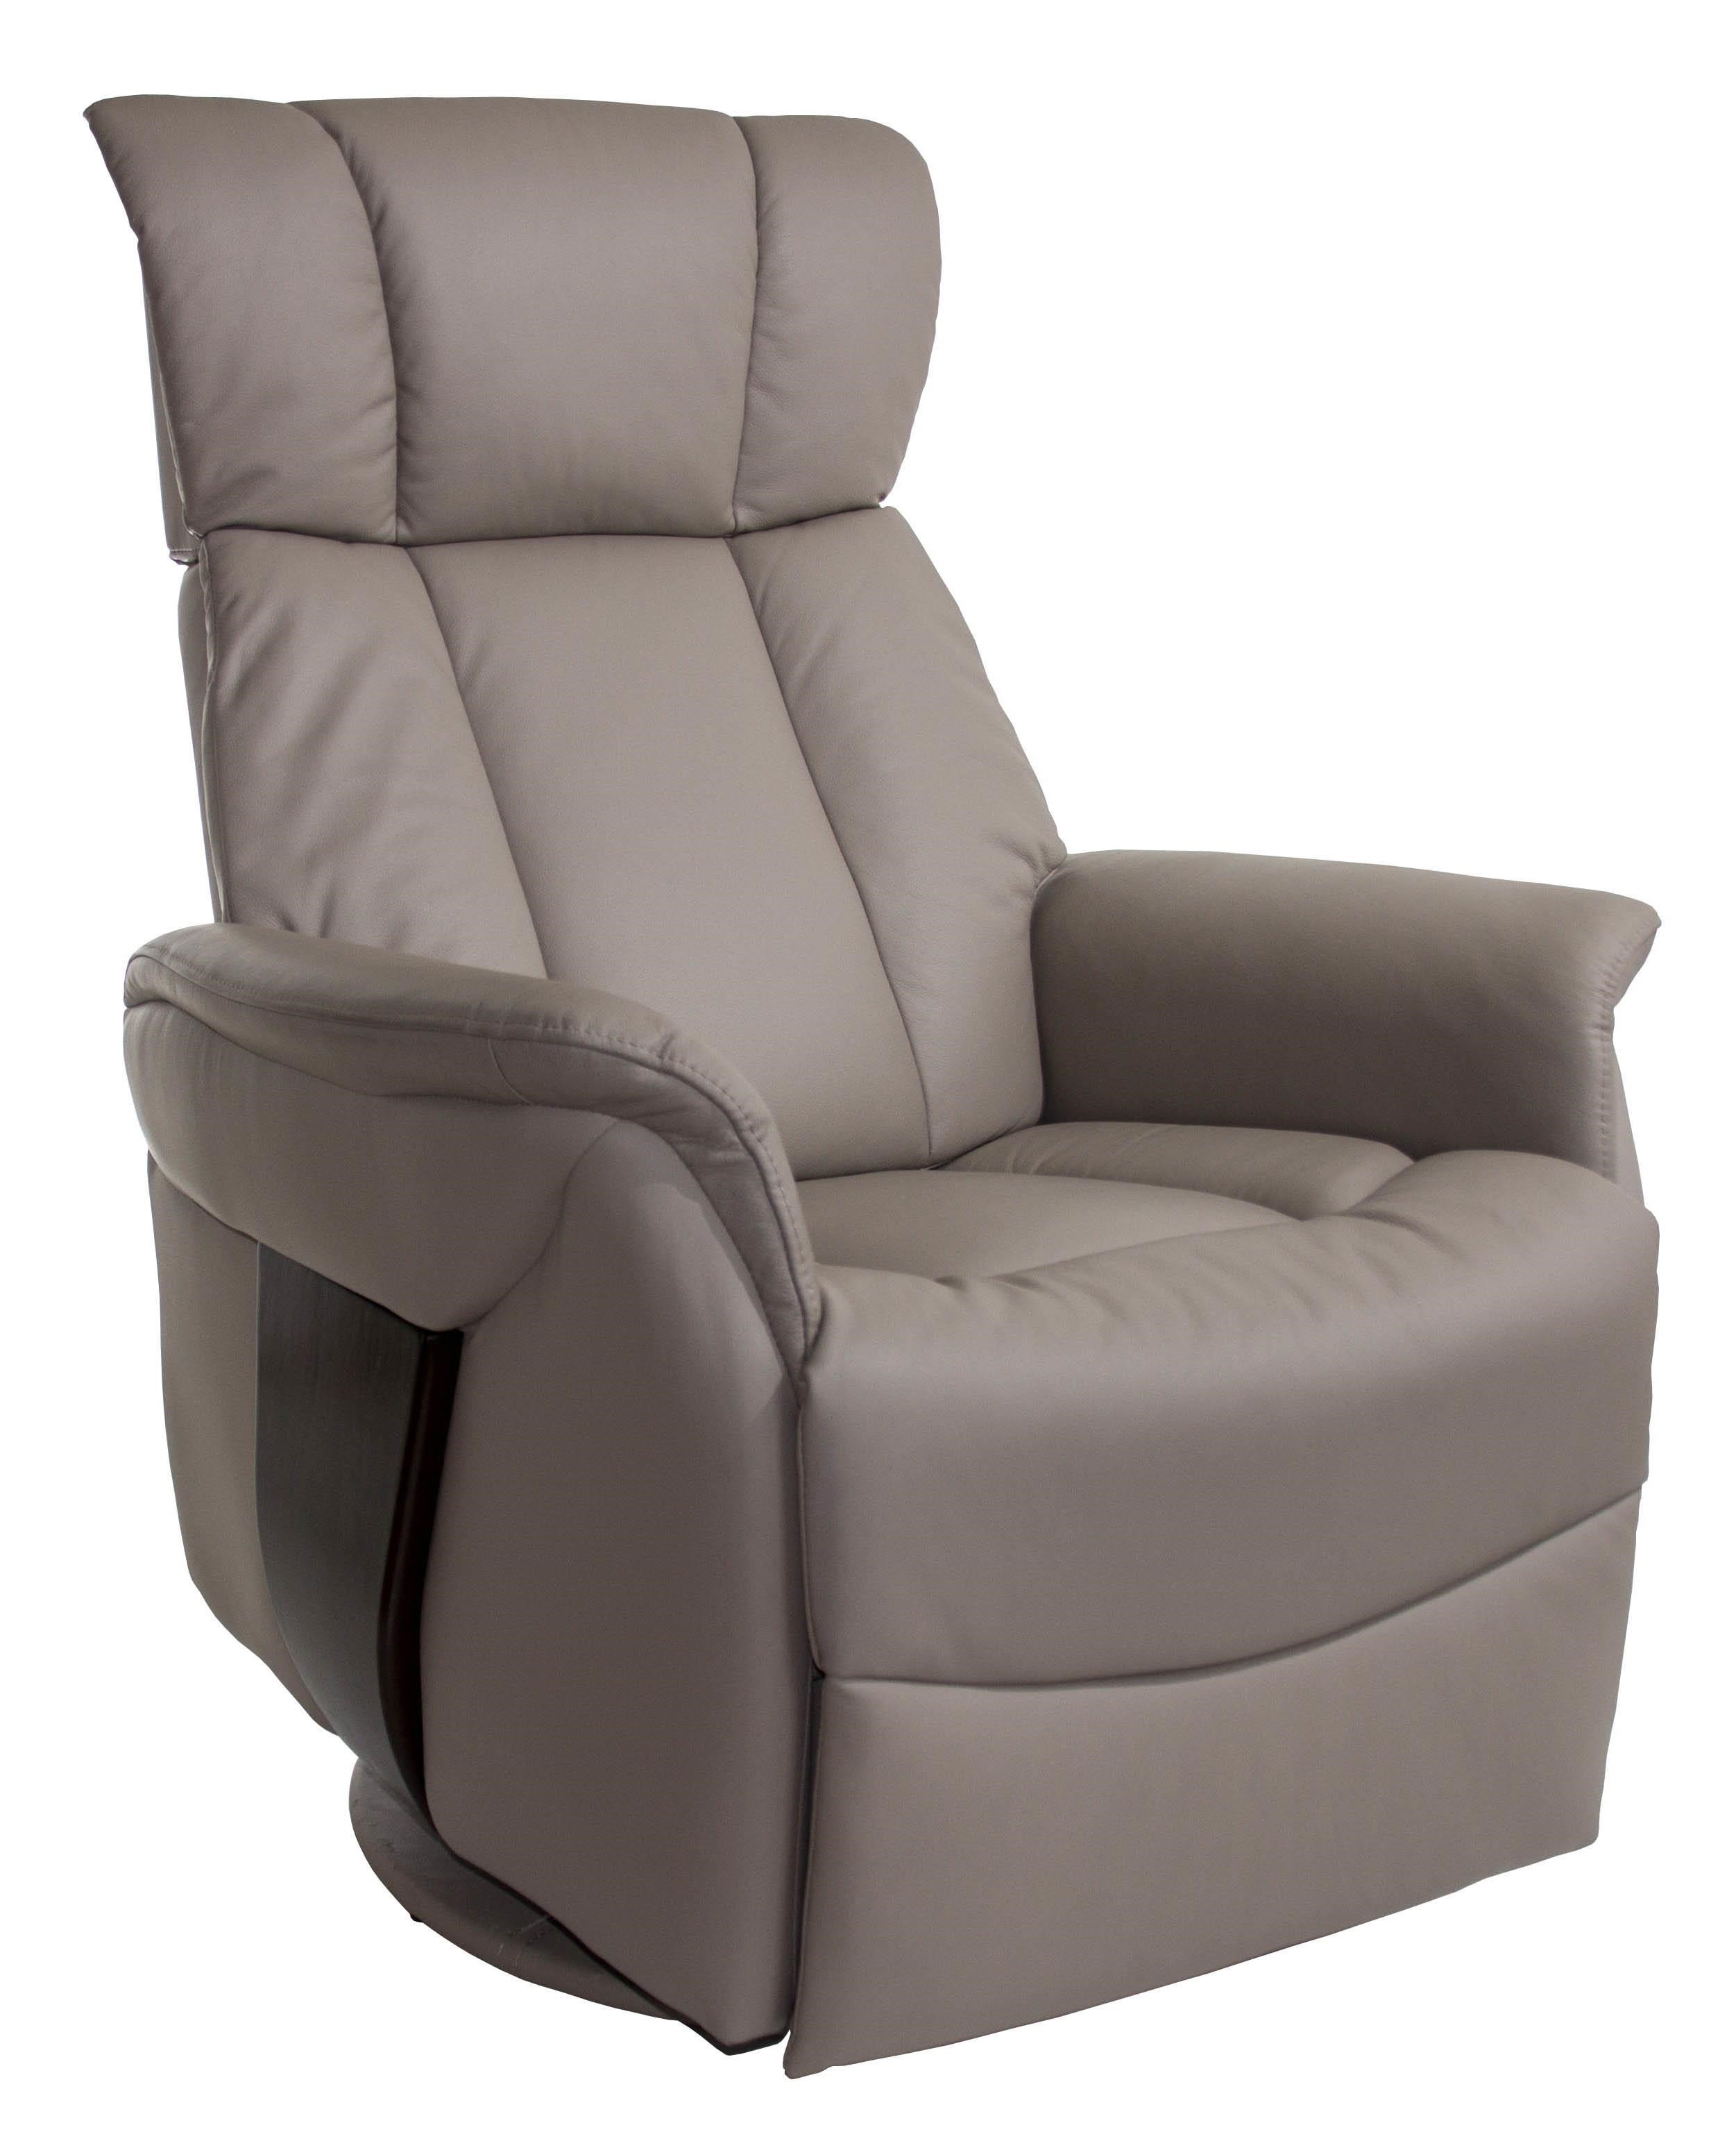 Mac Motion Chairs Oslo Collection Vardo Power Swivel Glider Recliner  sc 1 st  Boulevard Home Furnishings & Mac Motion Chairs Oslo Collection Vardo Power Swivel Glider ... islam-shia.org